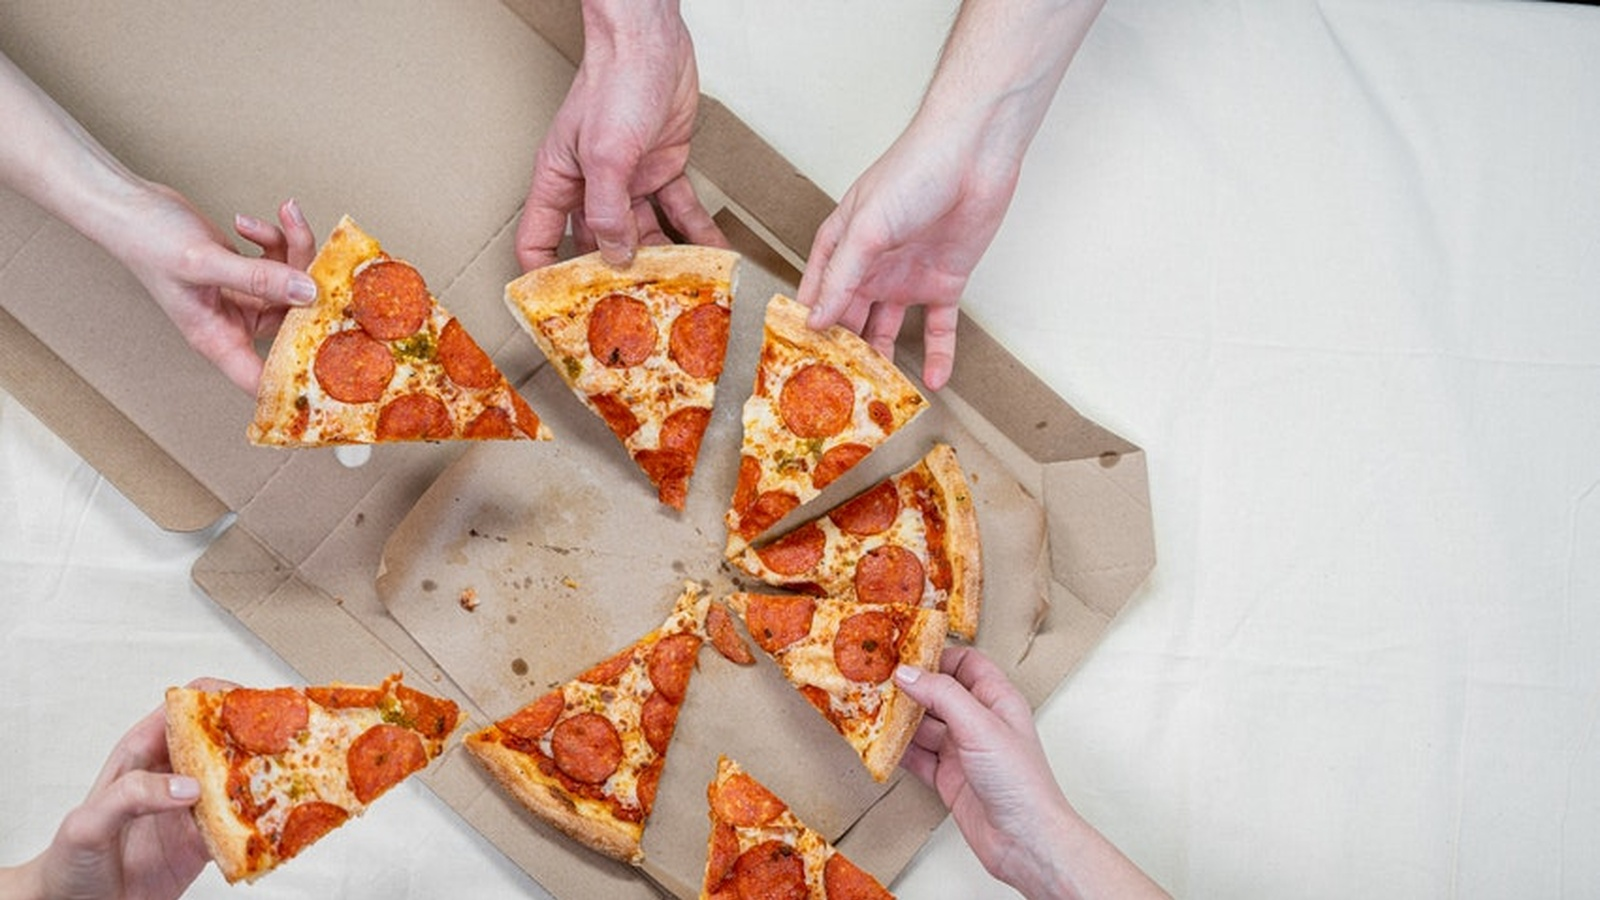 New Study Finds Food Addiction Symptoms Comparable To Those Of Substance Abuse